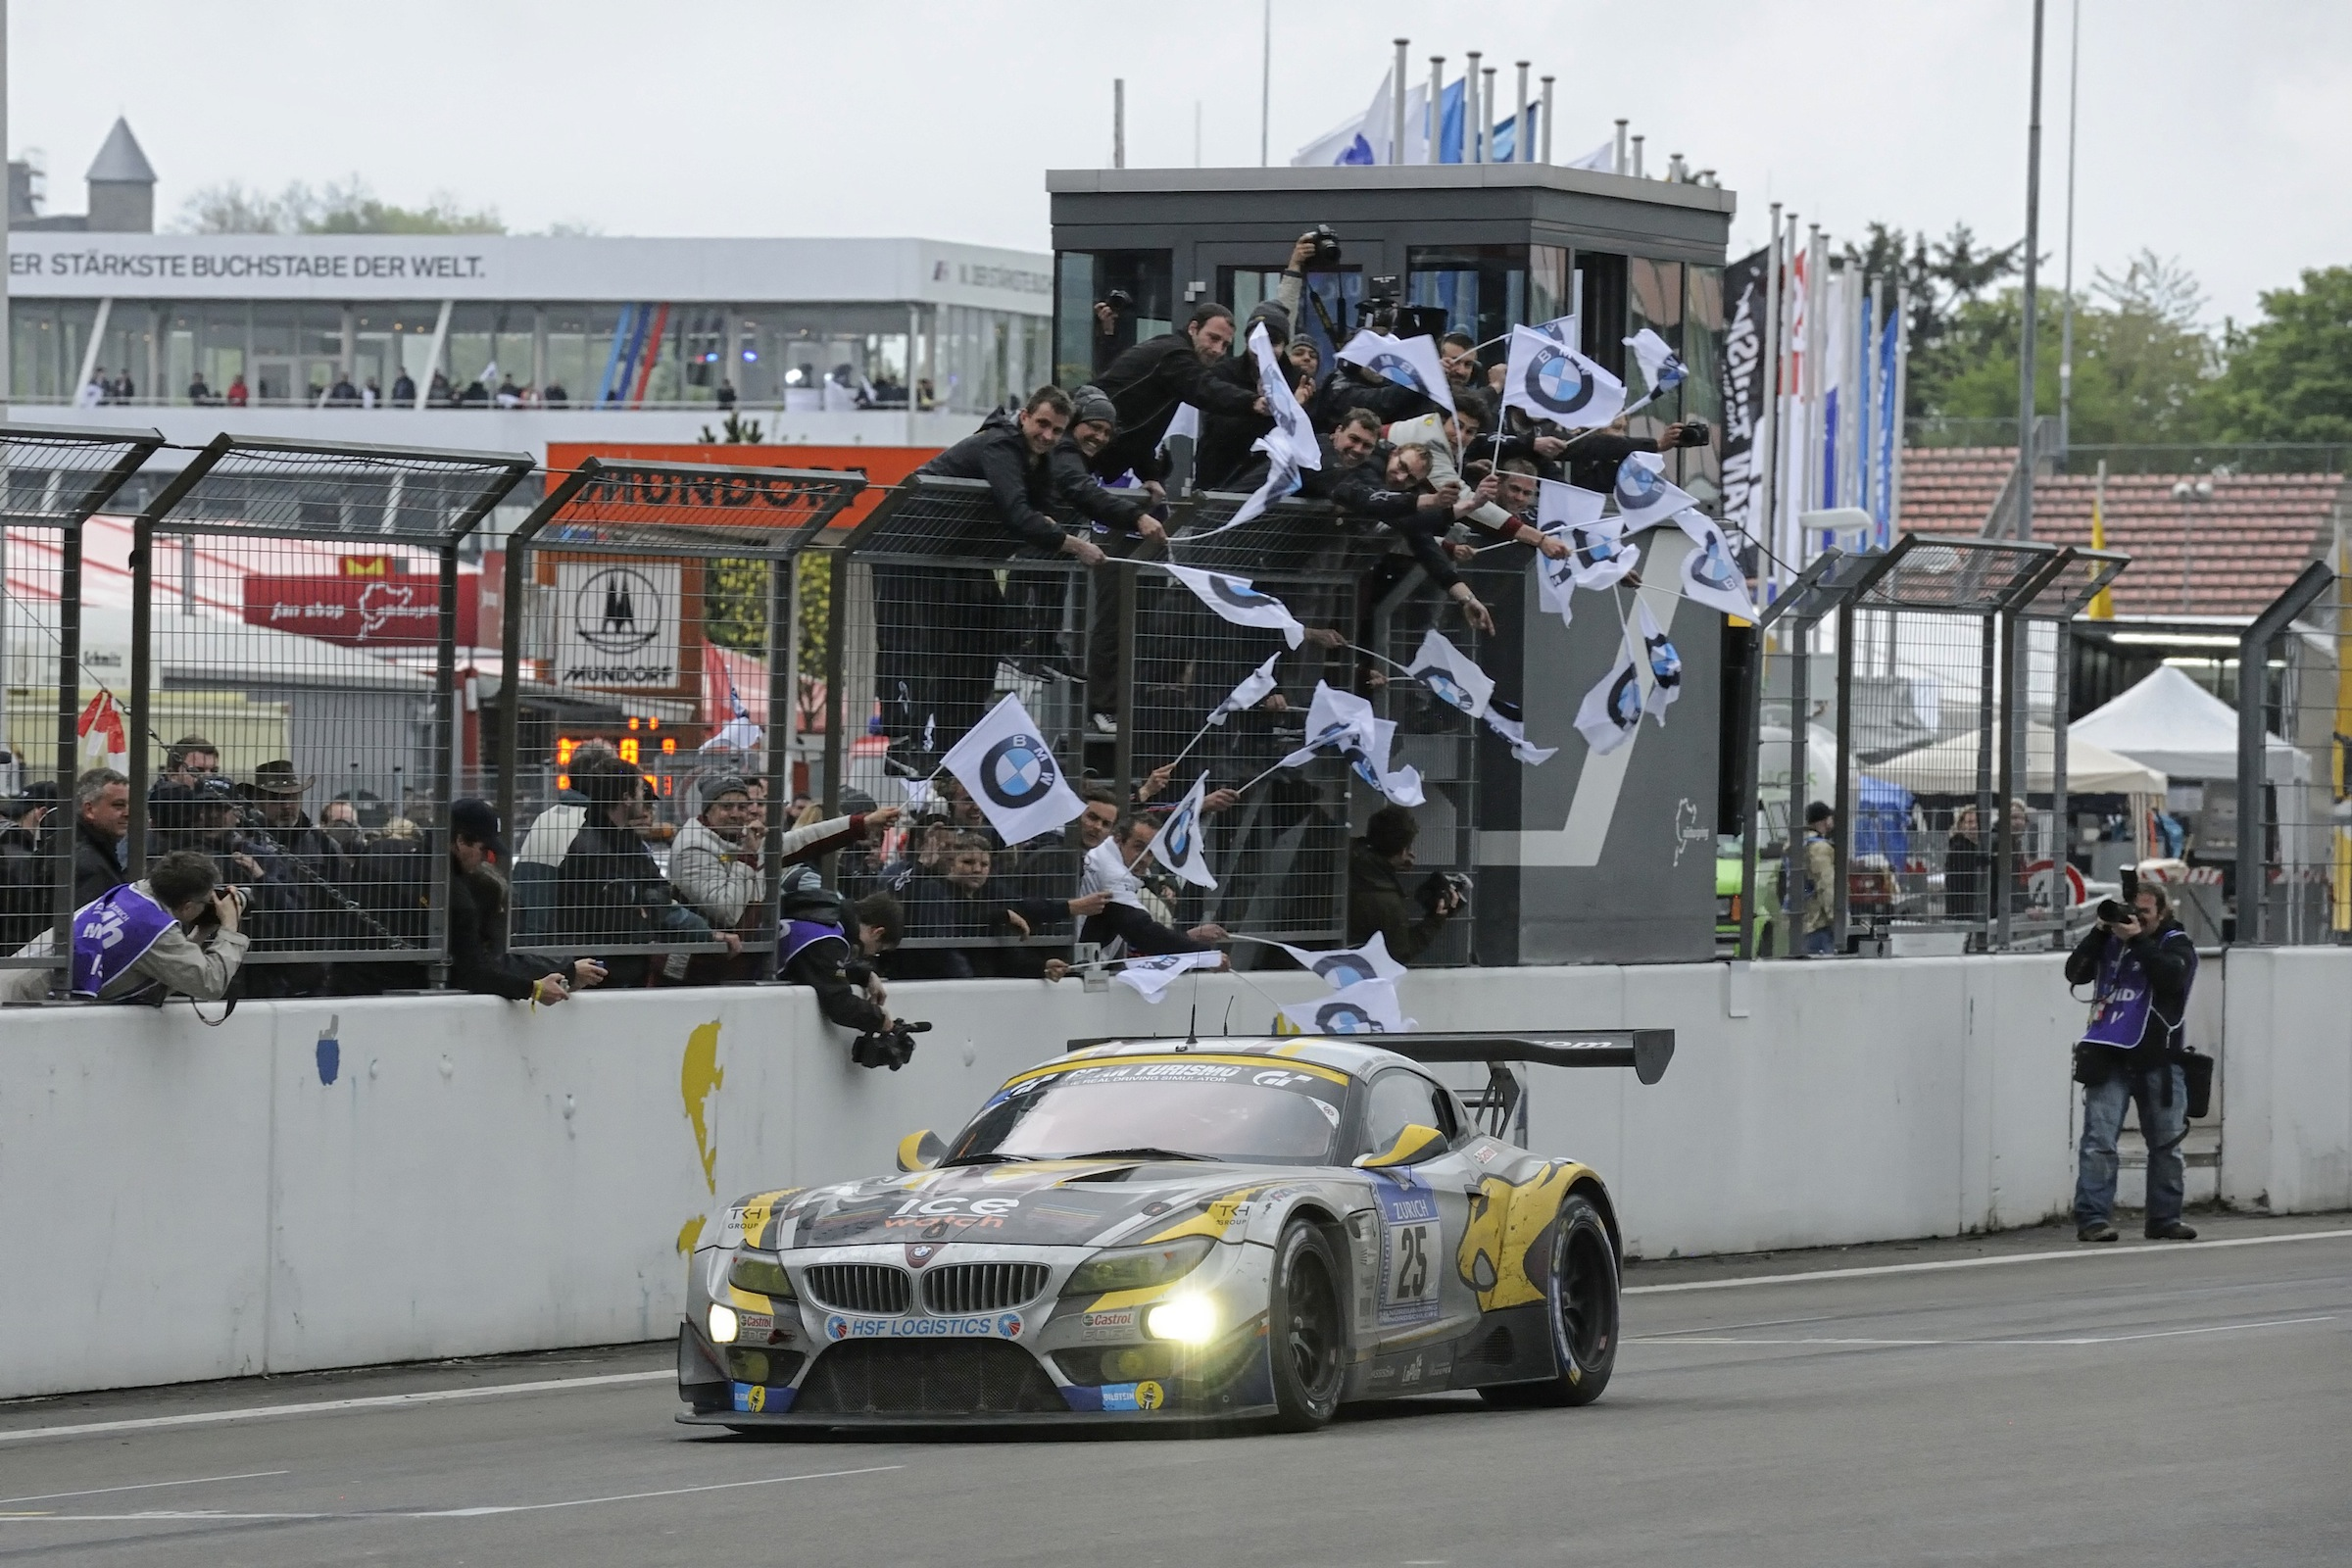 Bmw Z4 Gt3 Takes Second Place At Nurburgring 24 Hours Race